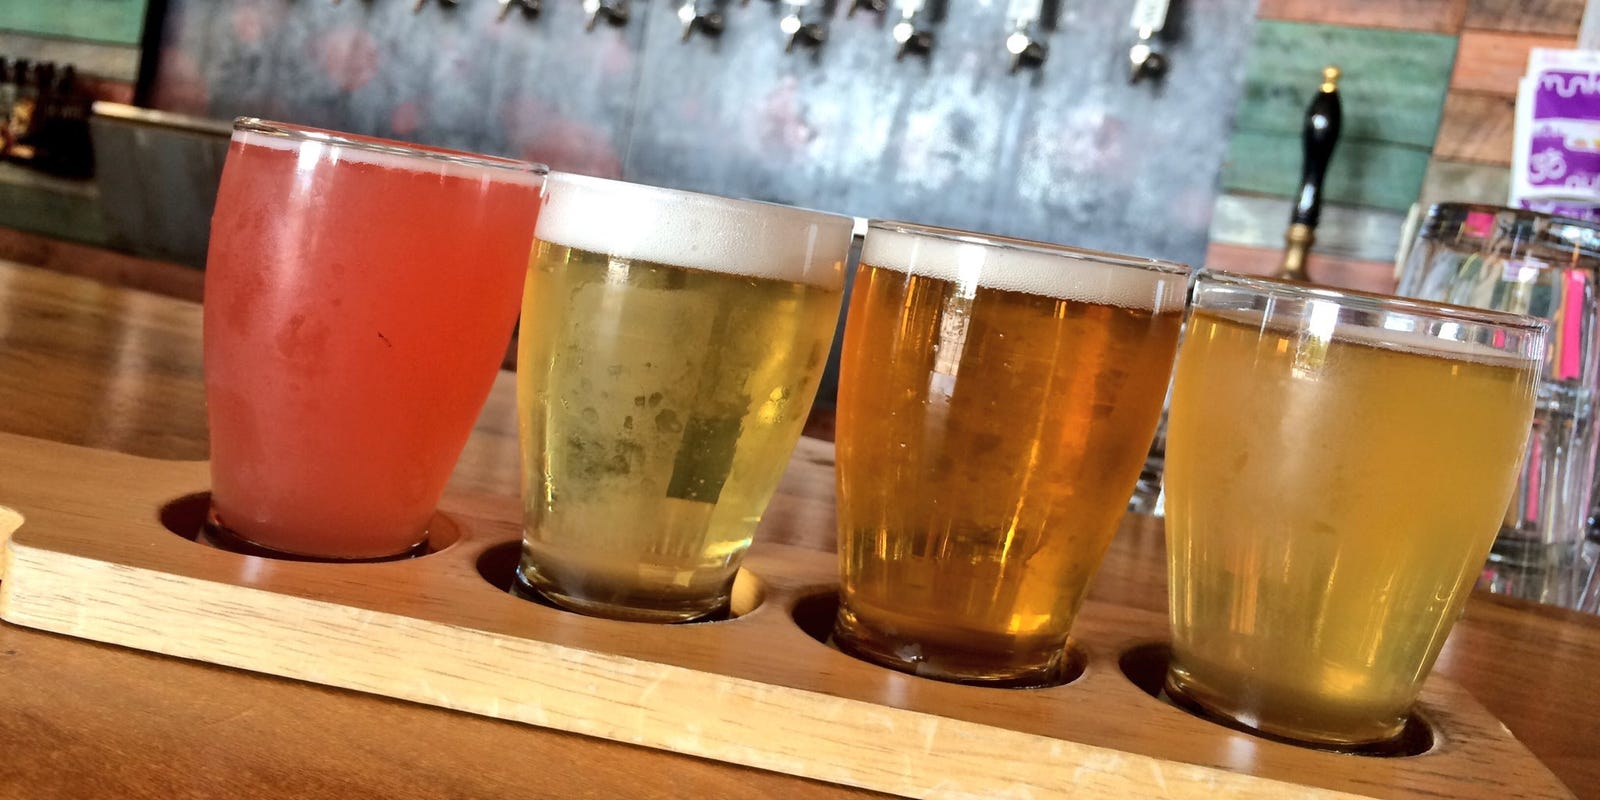 Tasting Asheville: From beer town to culinary capital